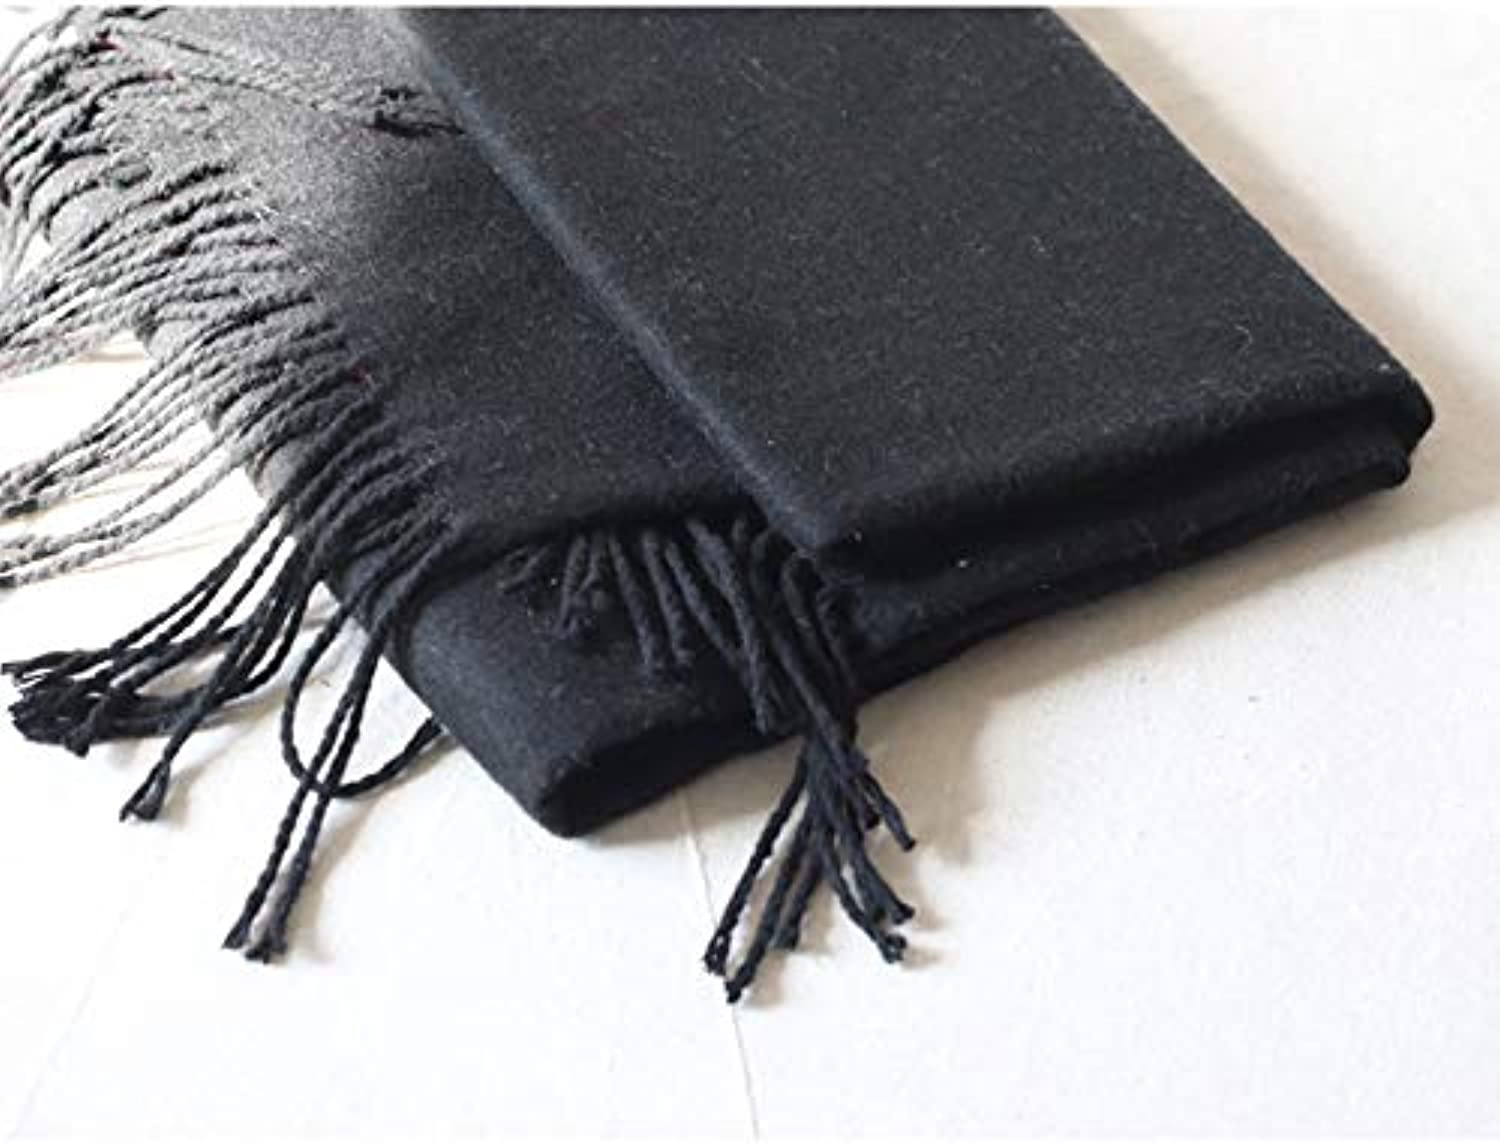 JINGB Home Scarf Female Shawl Long Tassel Solid color Men and Women Thick Warm Scarf Scarf (color   Black)